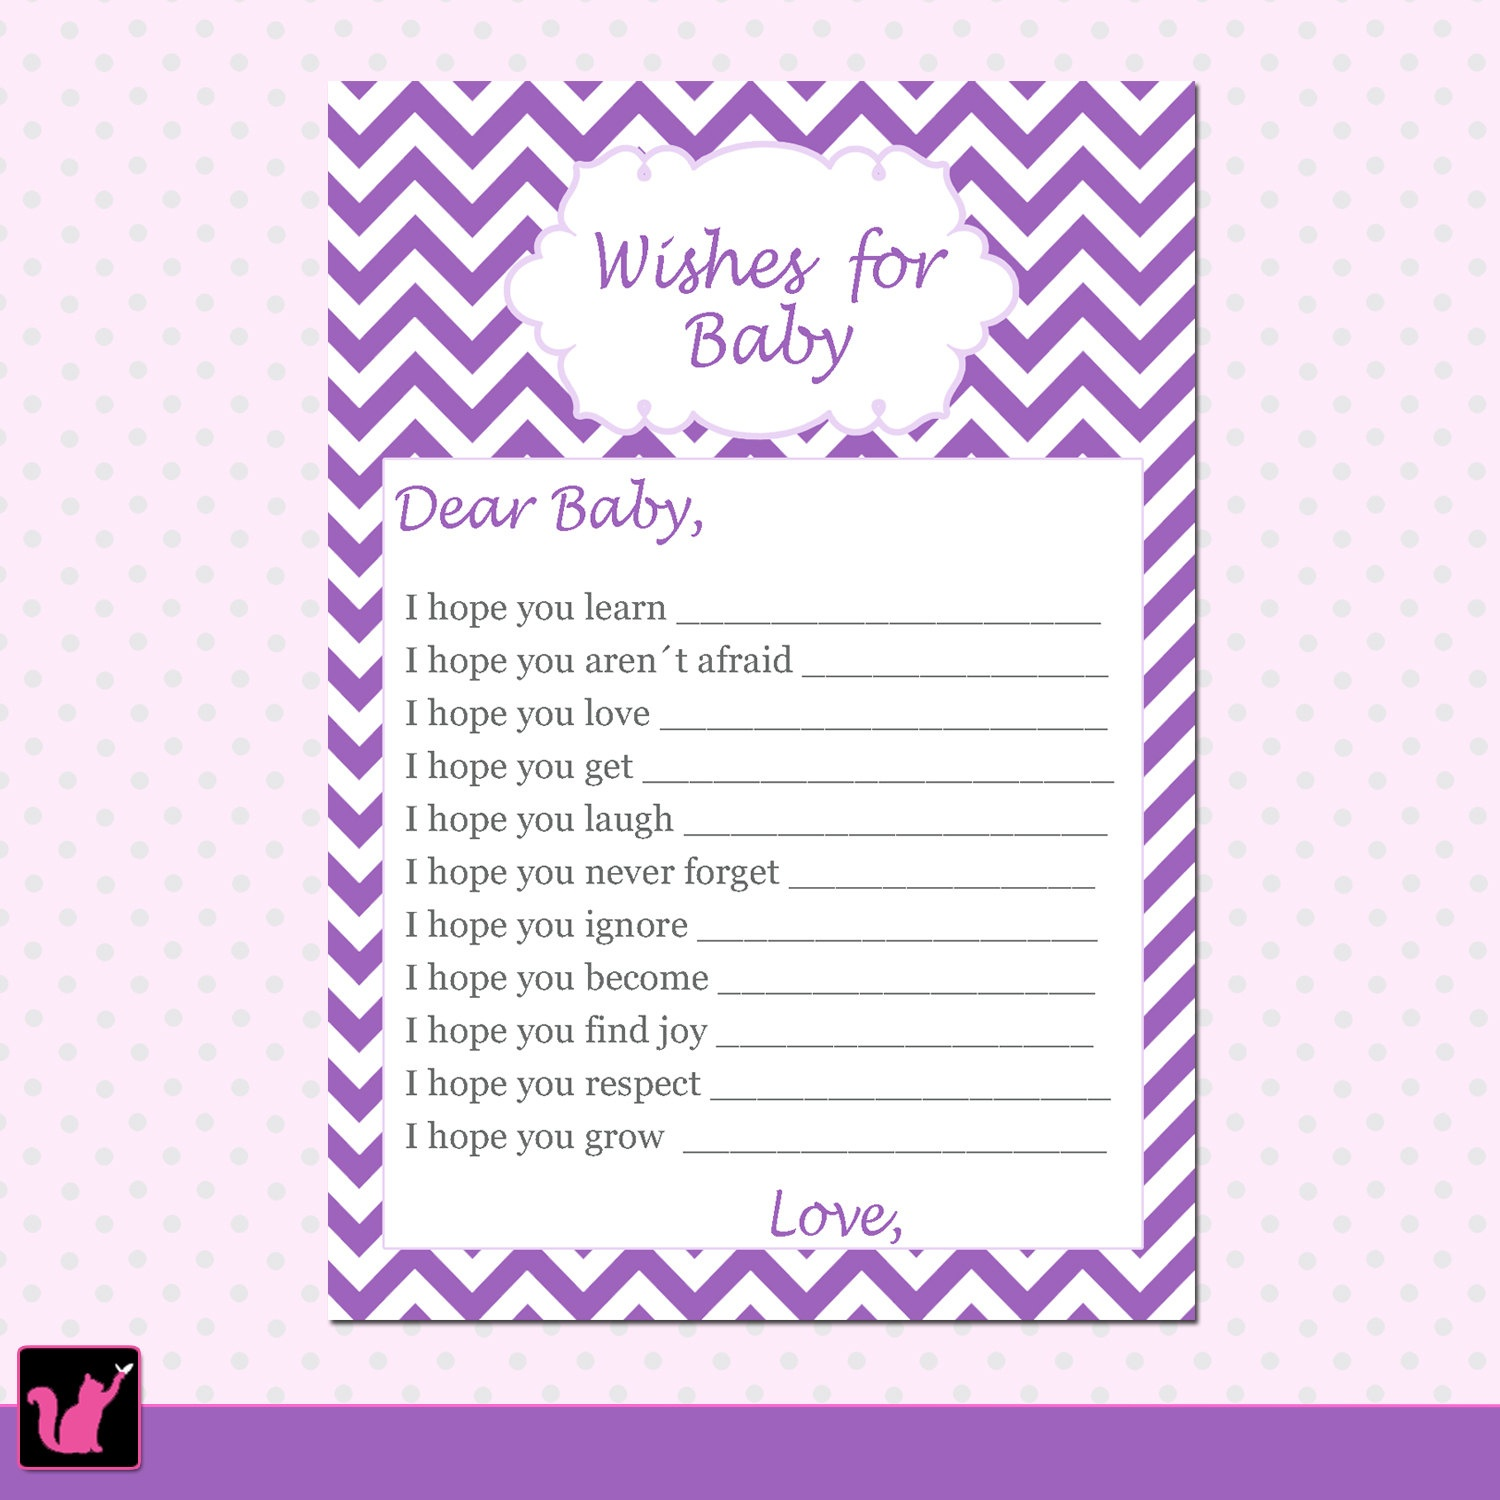 Photo : Free Printable Baby Shower Image - Free Printable Baby Shower Games In Spanish